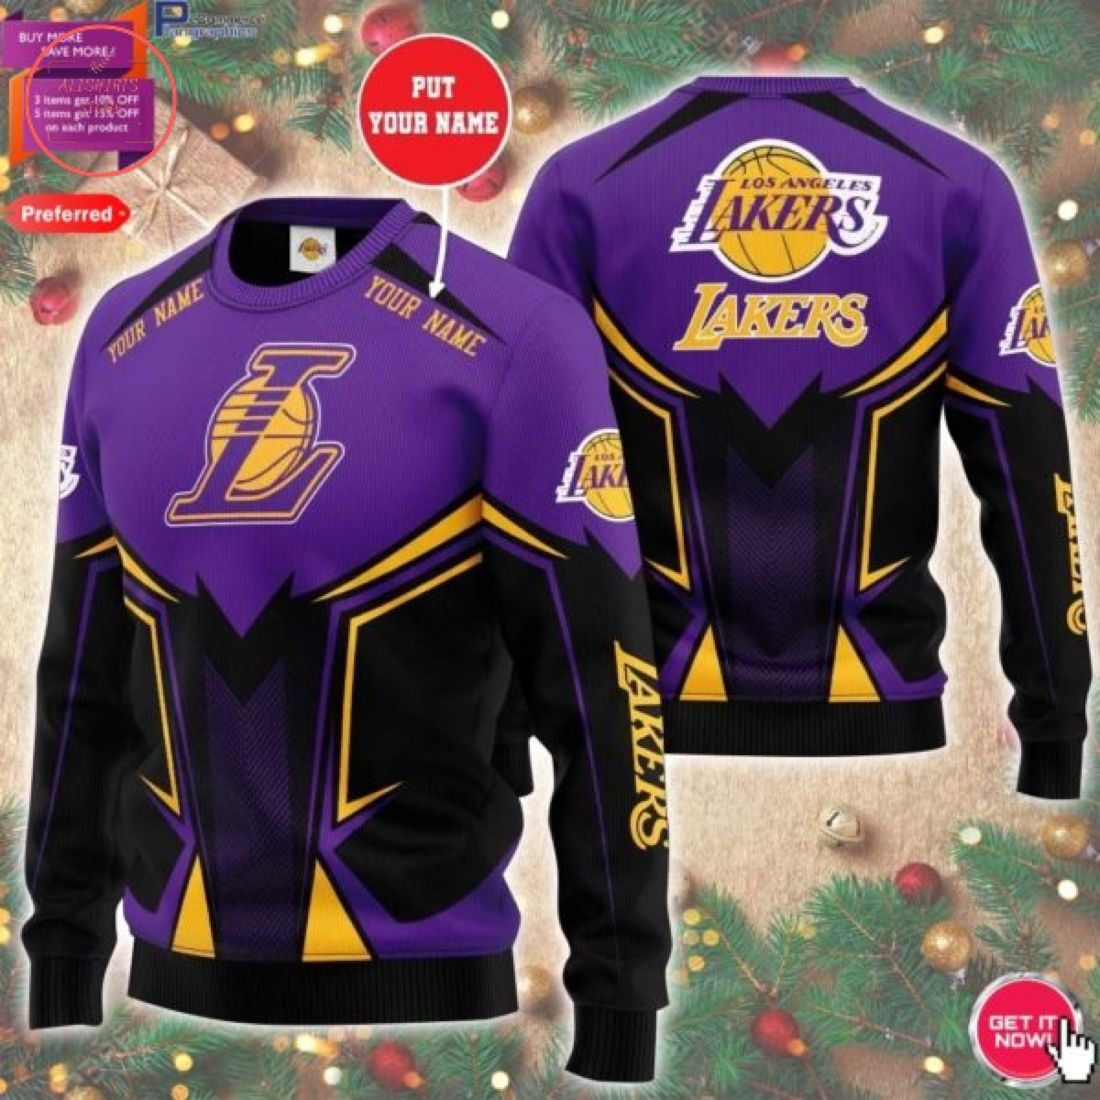 NBA Los Angeles Lakers Personalized Sweater